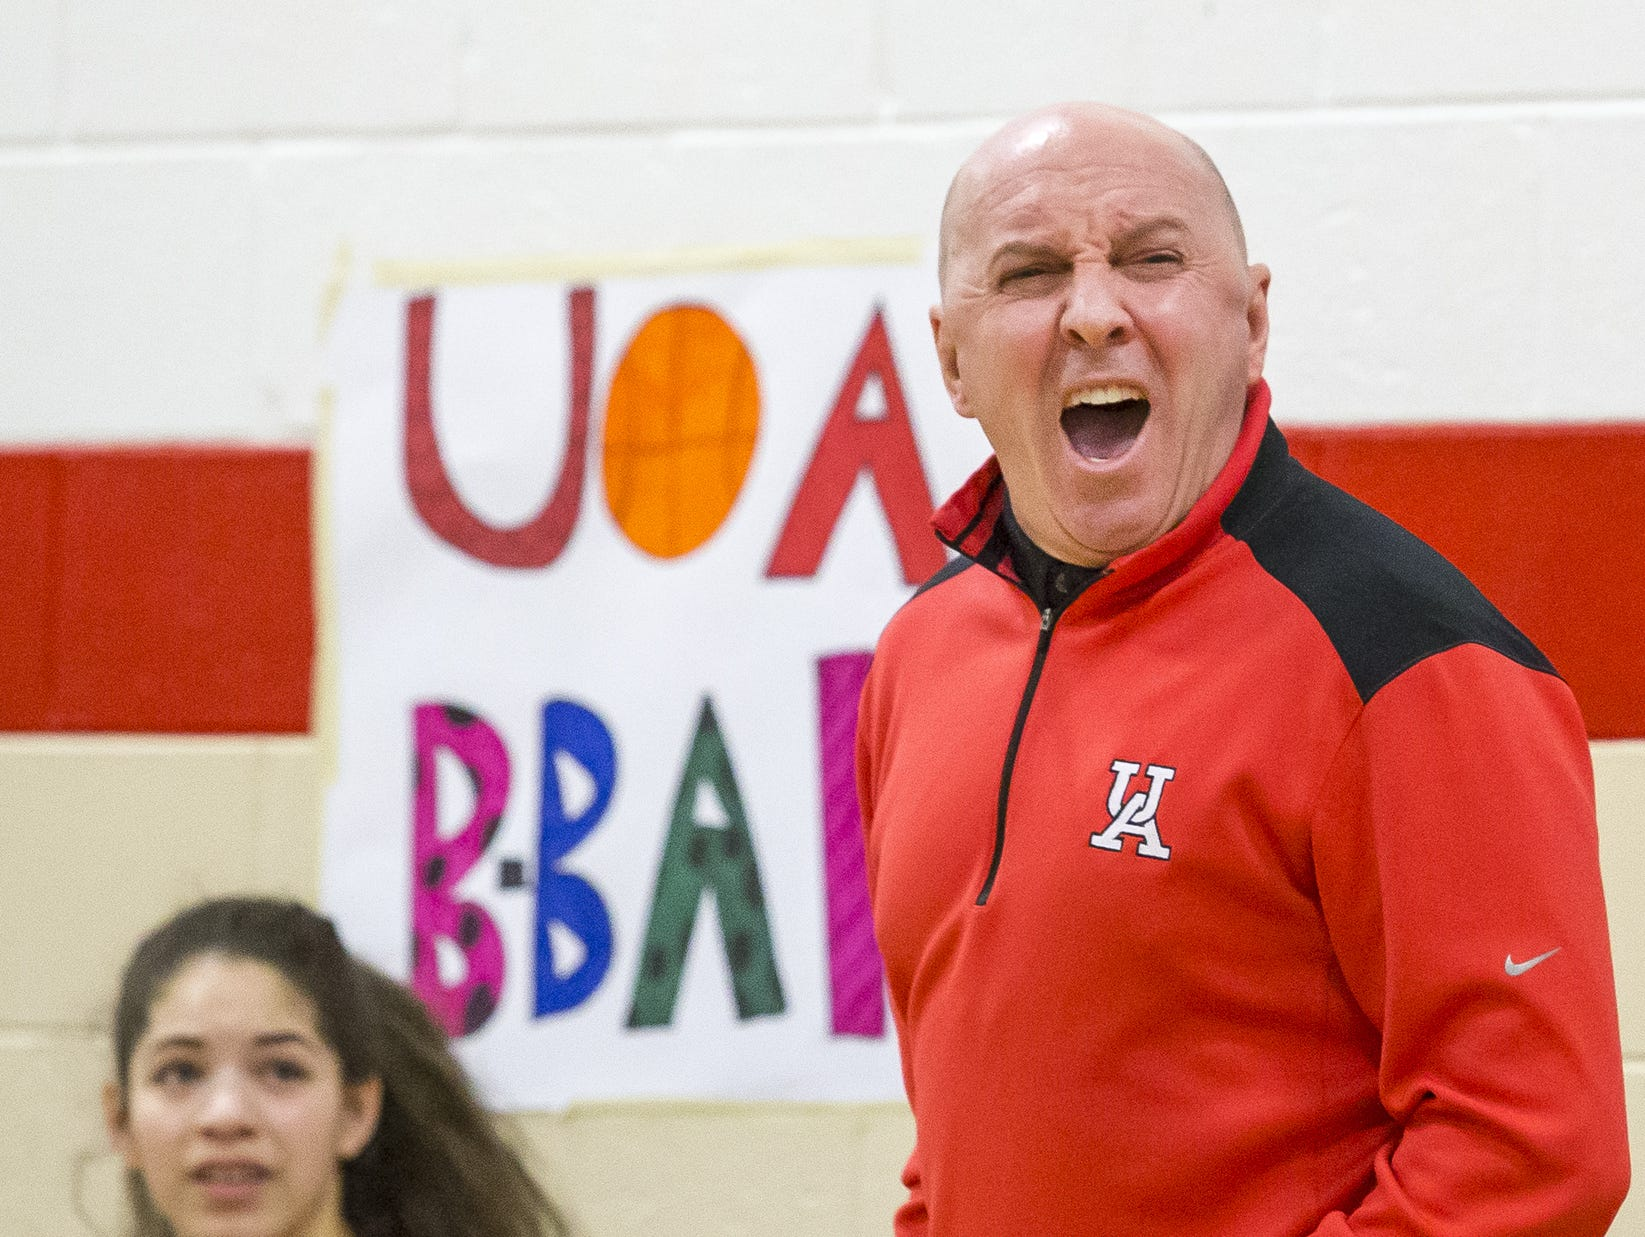 John Noonan and Ursuline capped their regular season with a 19-1 mark with a 71-37 win over Concord on Tuesday night.